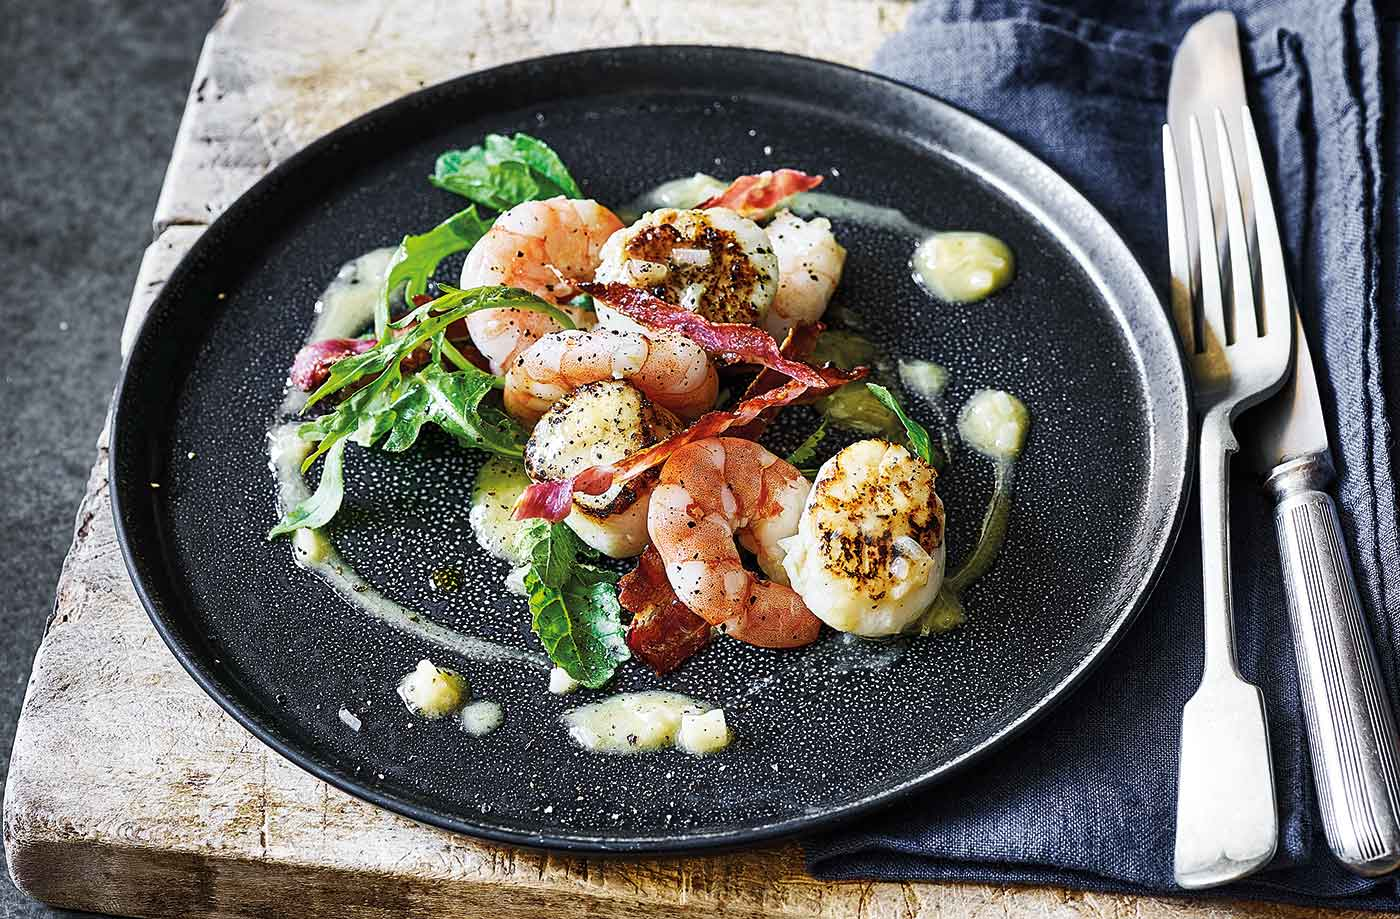 Scallops, prawns and pancetta with beurre blanc recipe